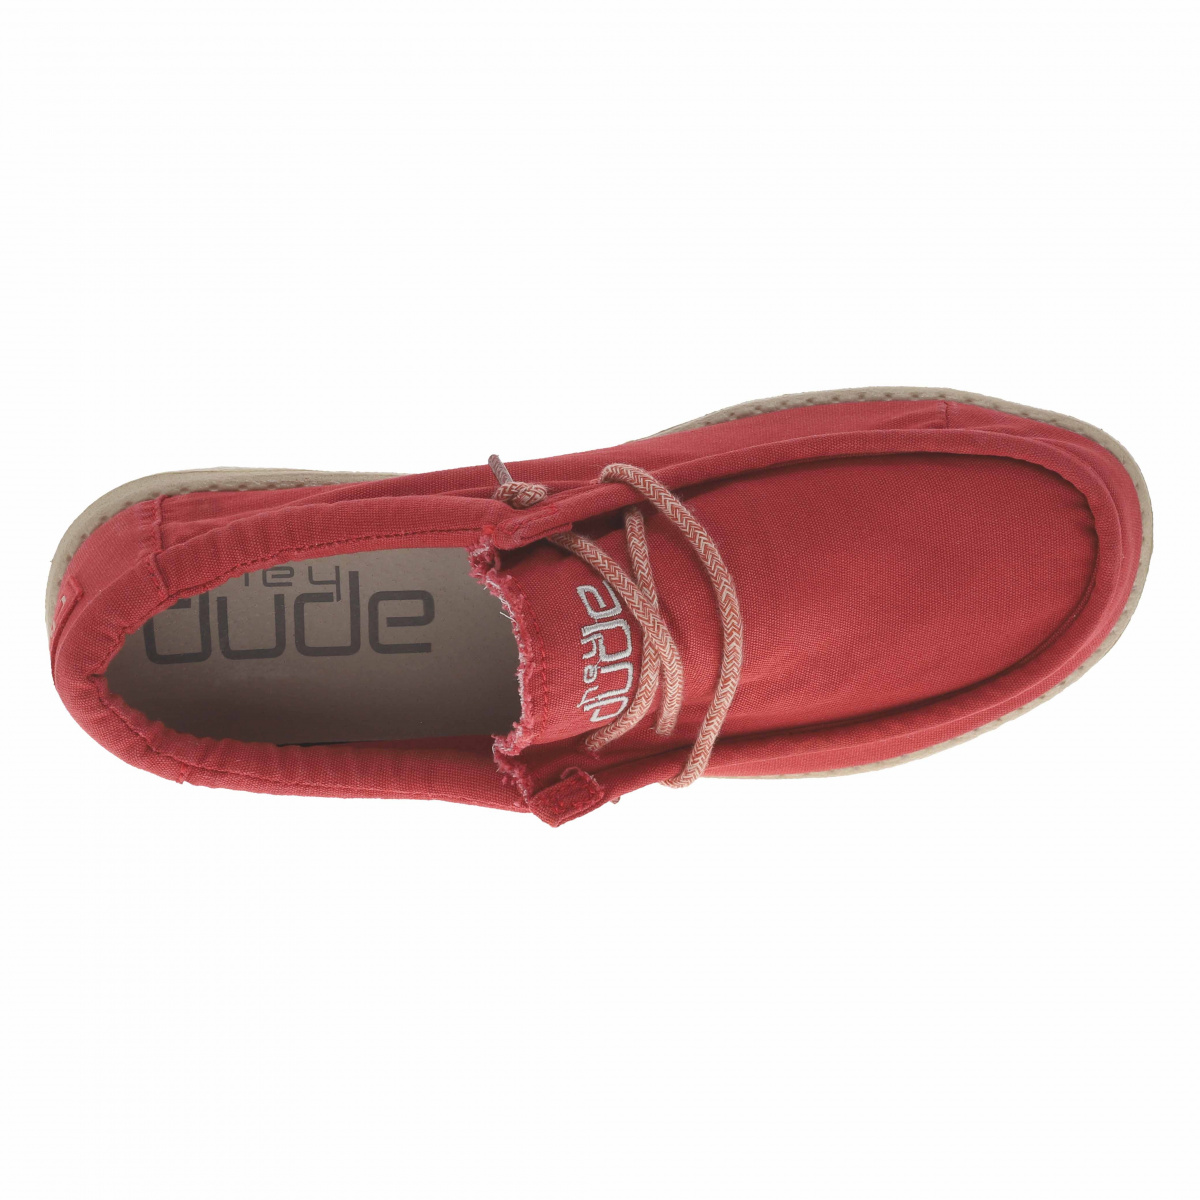 Baskets basses homme WALLY WASHED HEYDUDE